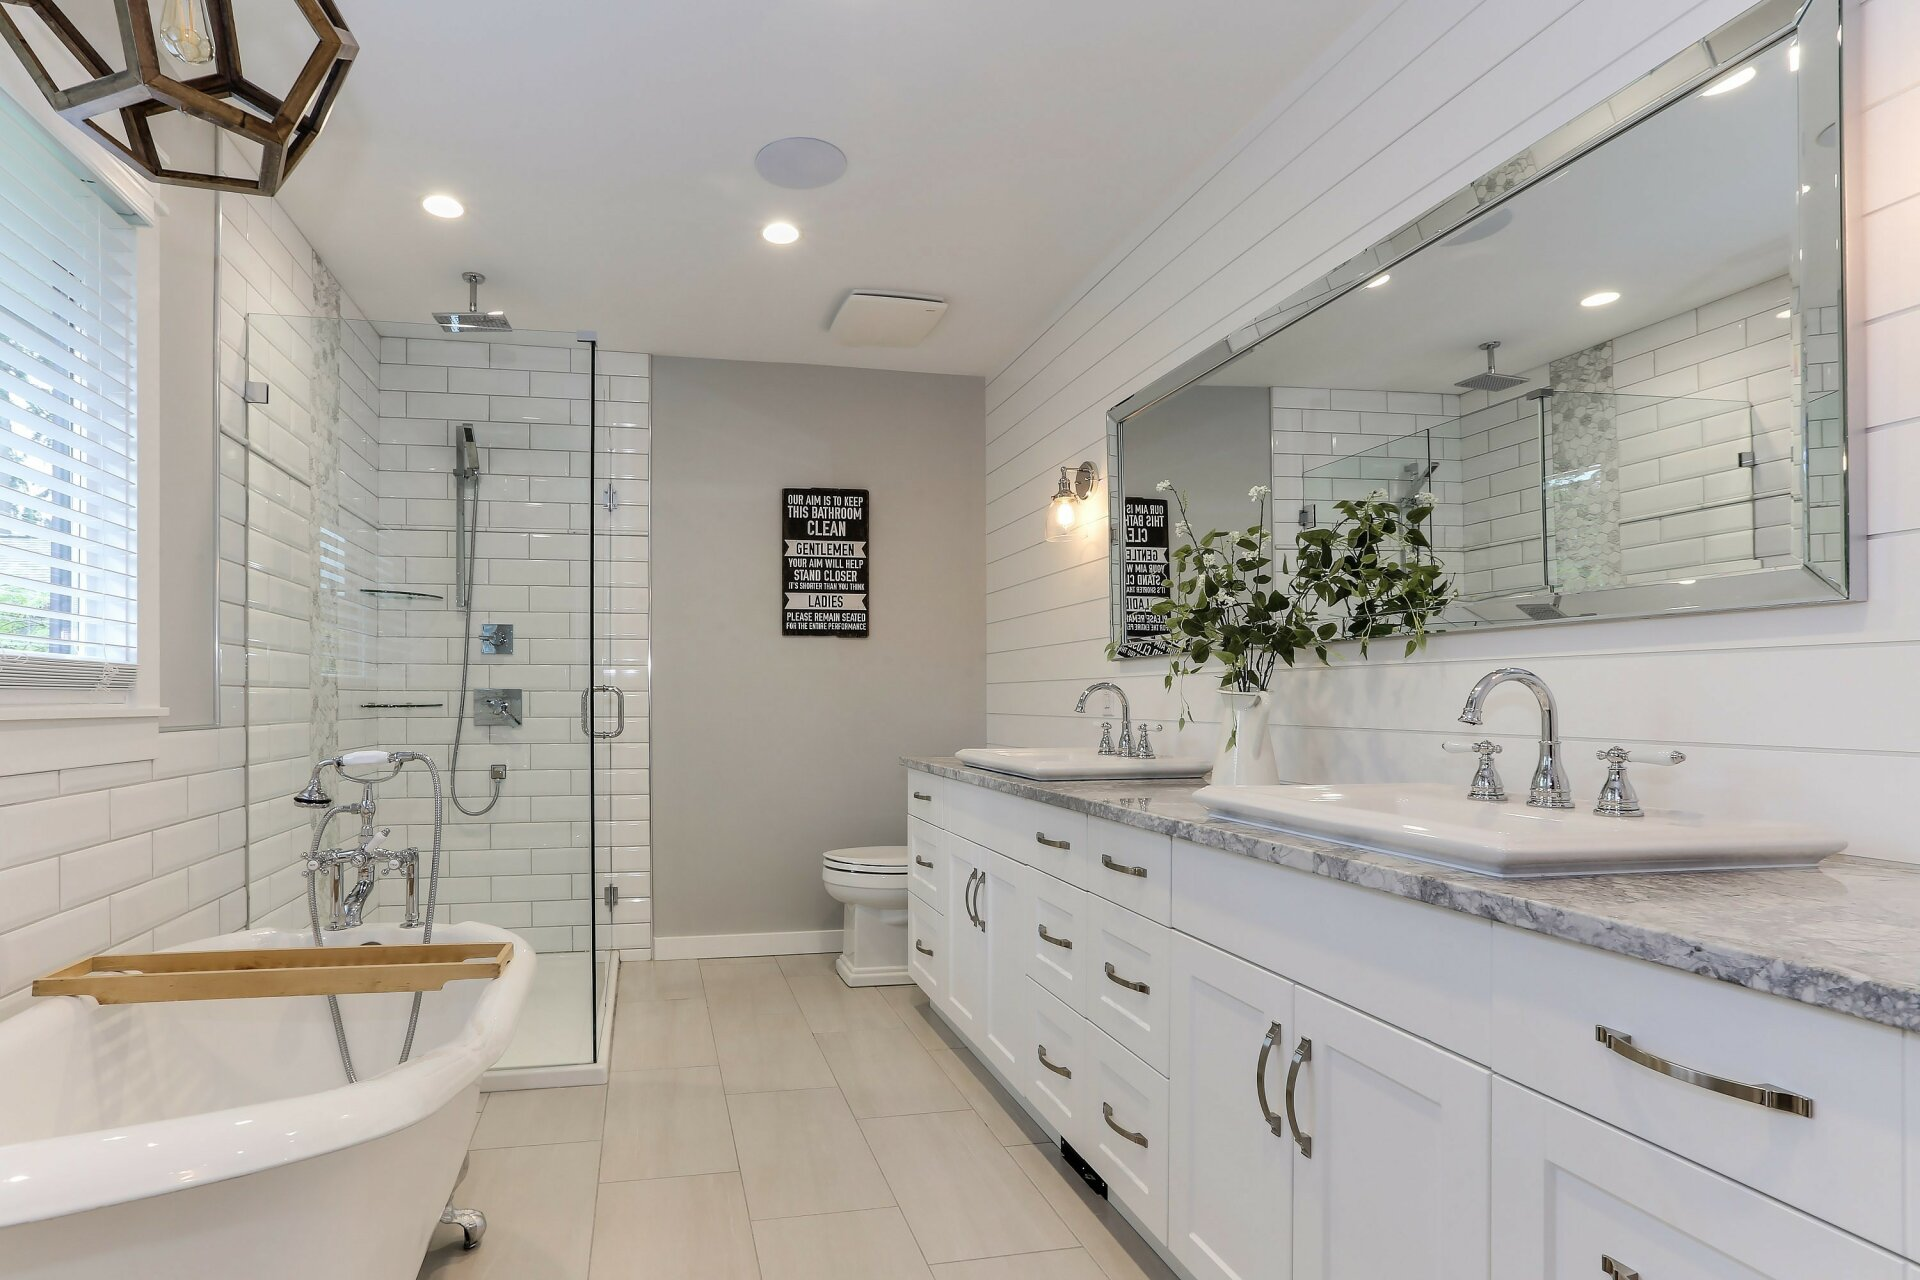 A beautiful renovated bathroom, featuring full bath, white vanities and his and hers sinks.